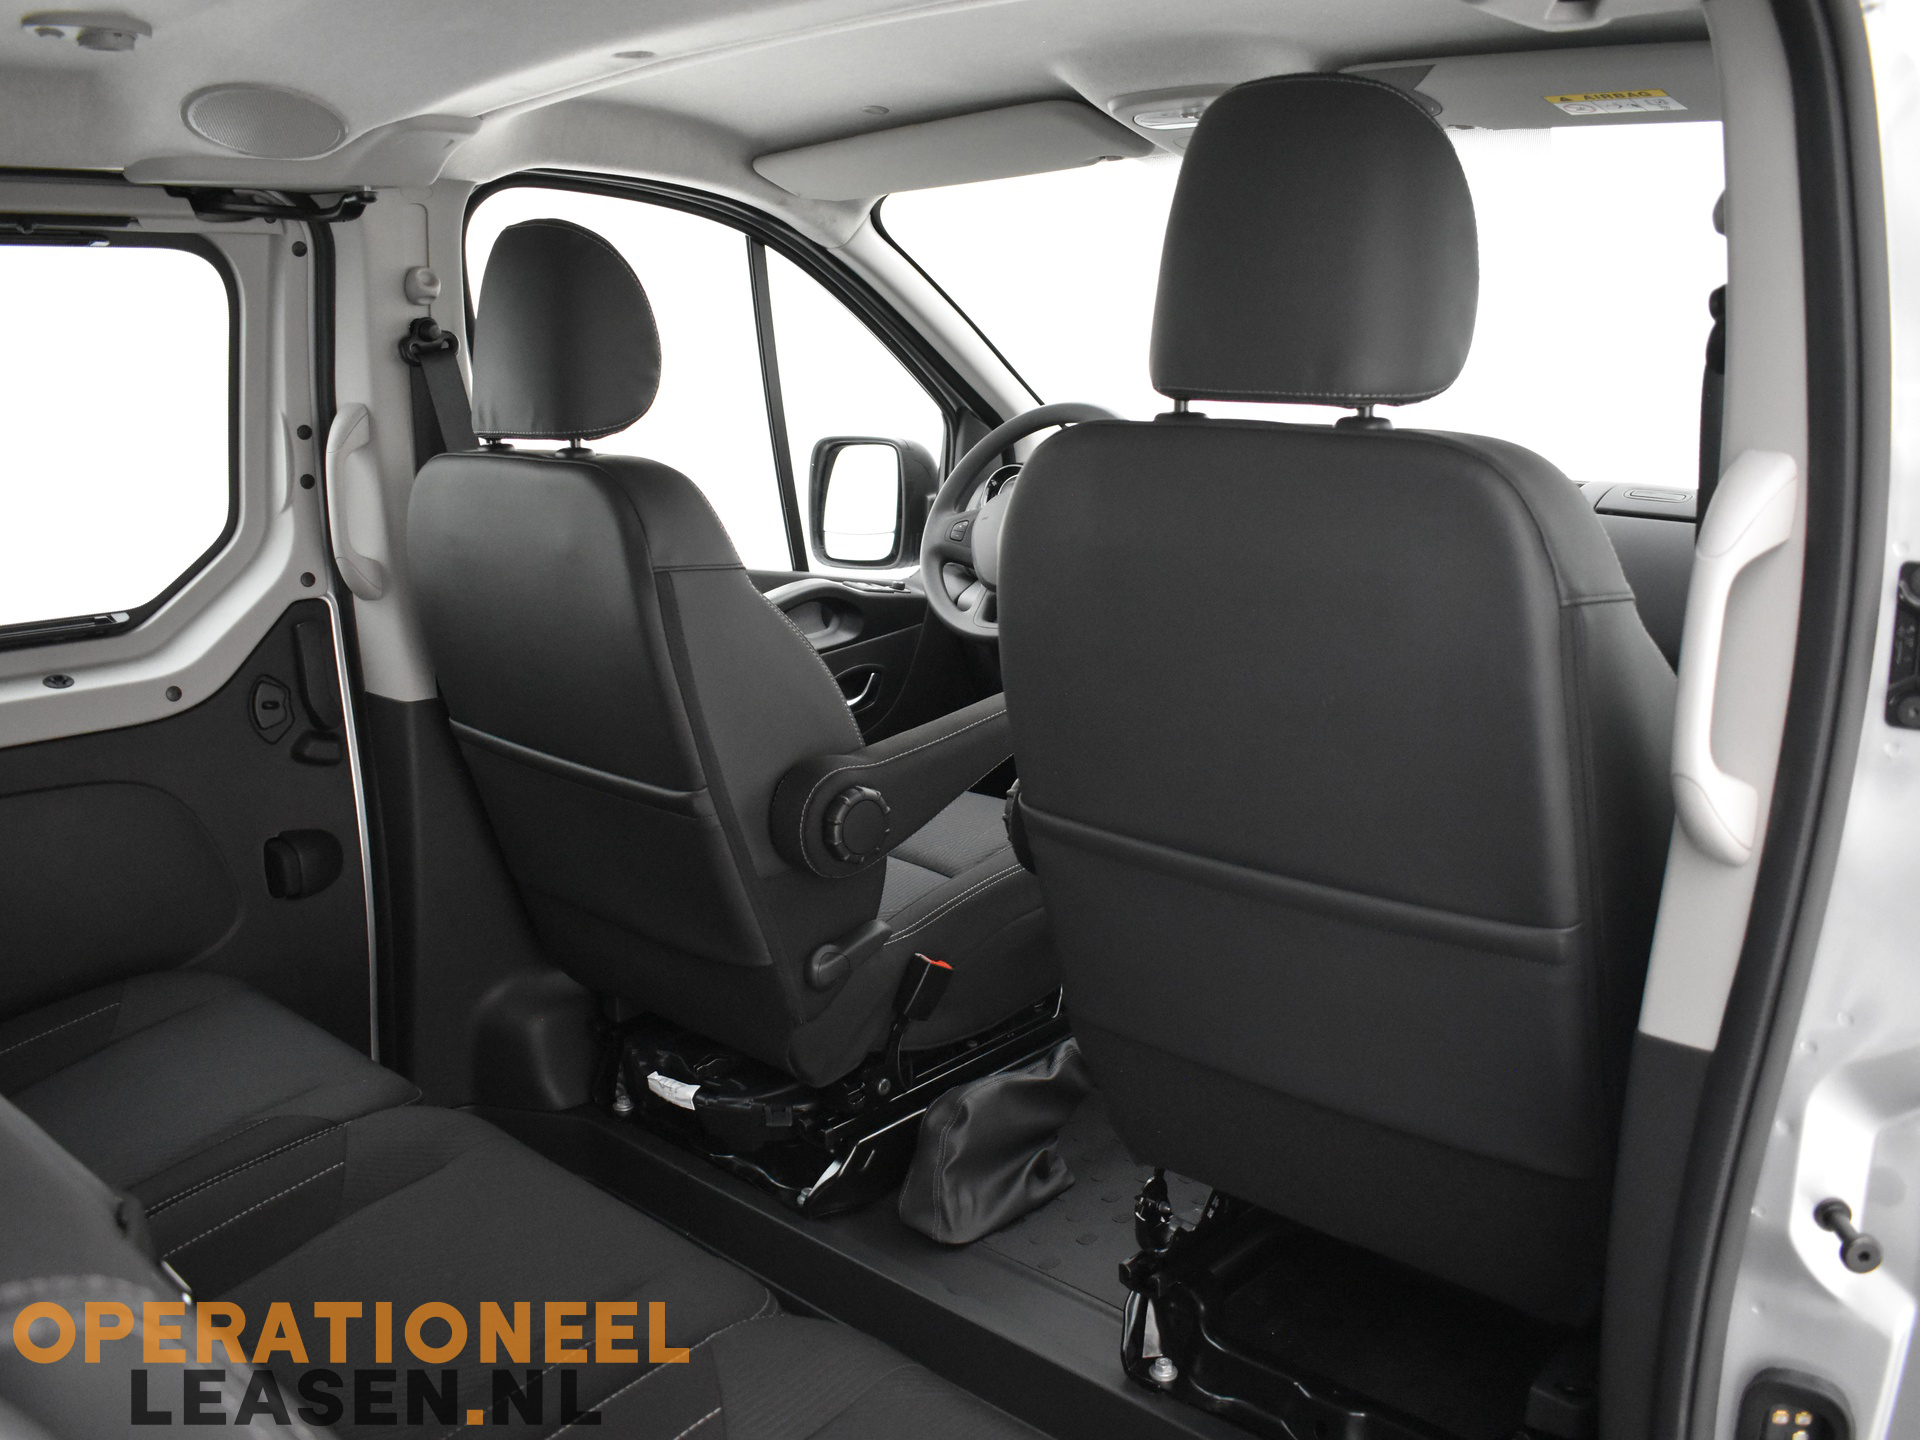 Operational lease Renault master traffic-25